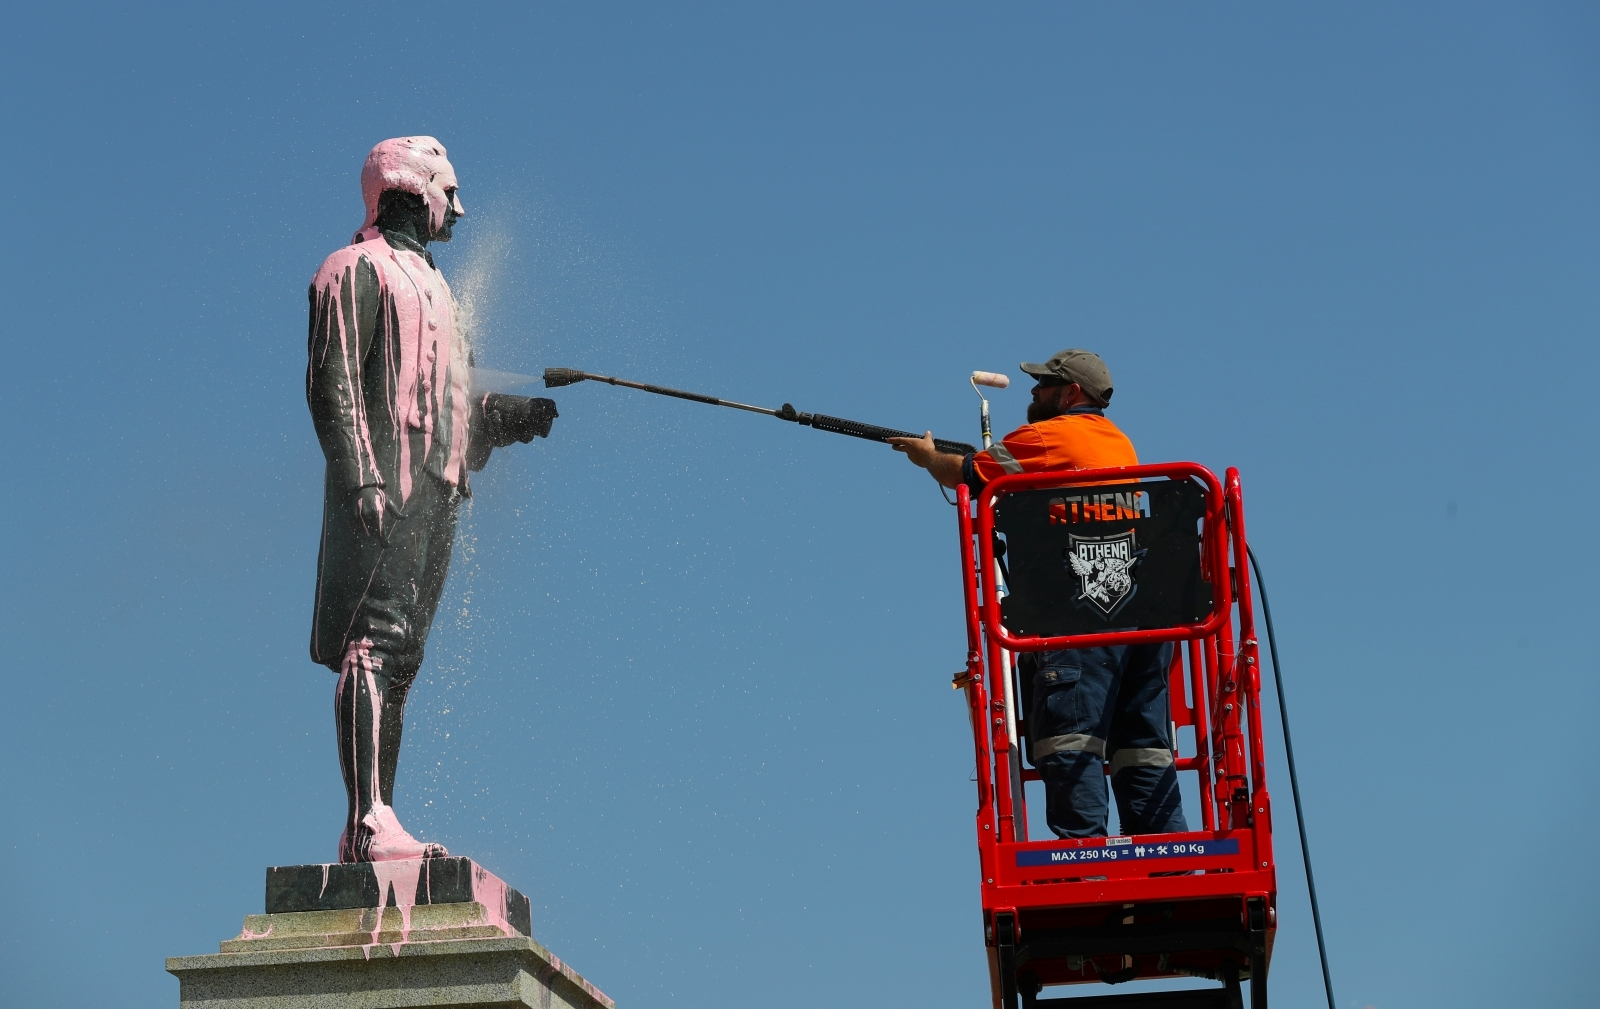 Captain cook statue vandlaised